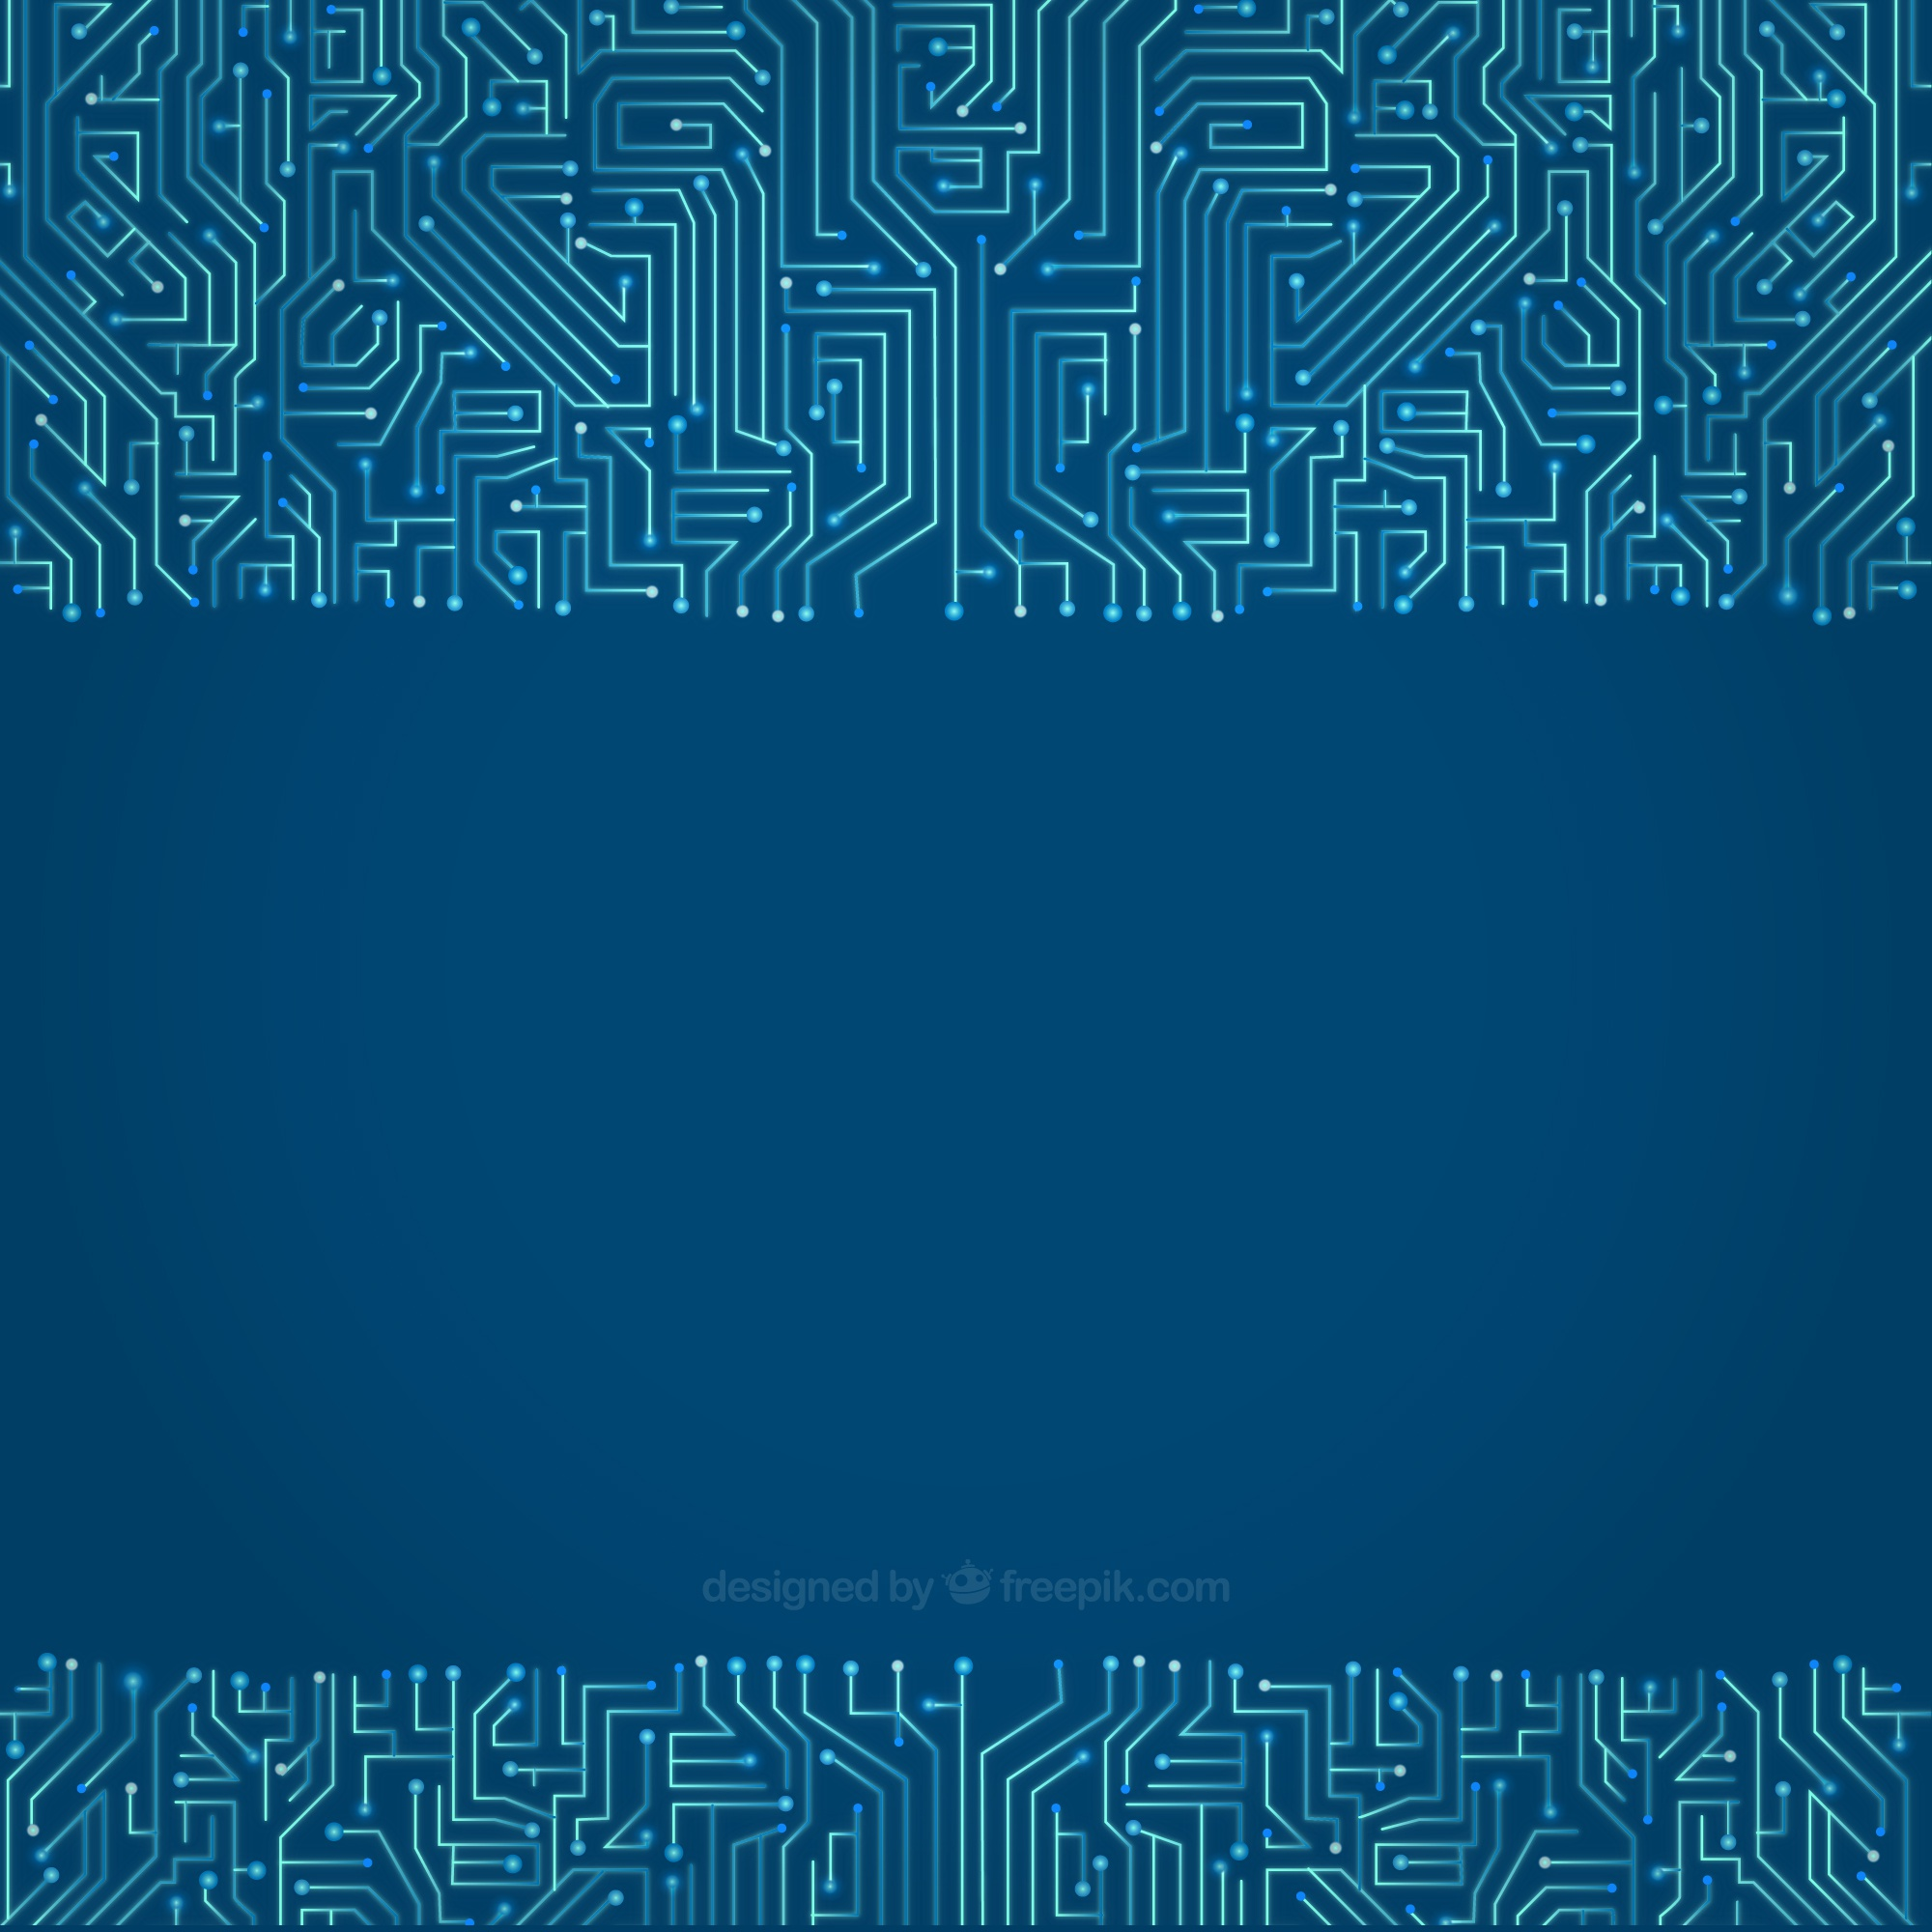 circuit board vectors  photos and psd files free download 25 Years in Business Announcement Celebrating 25 Years Logo